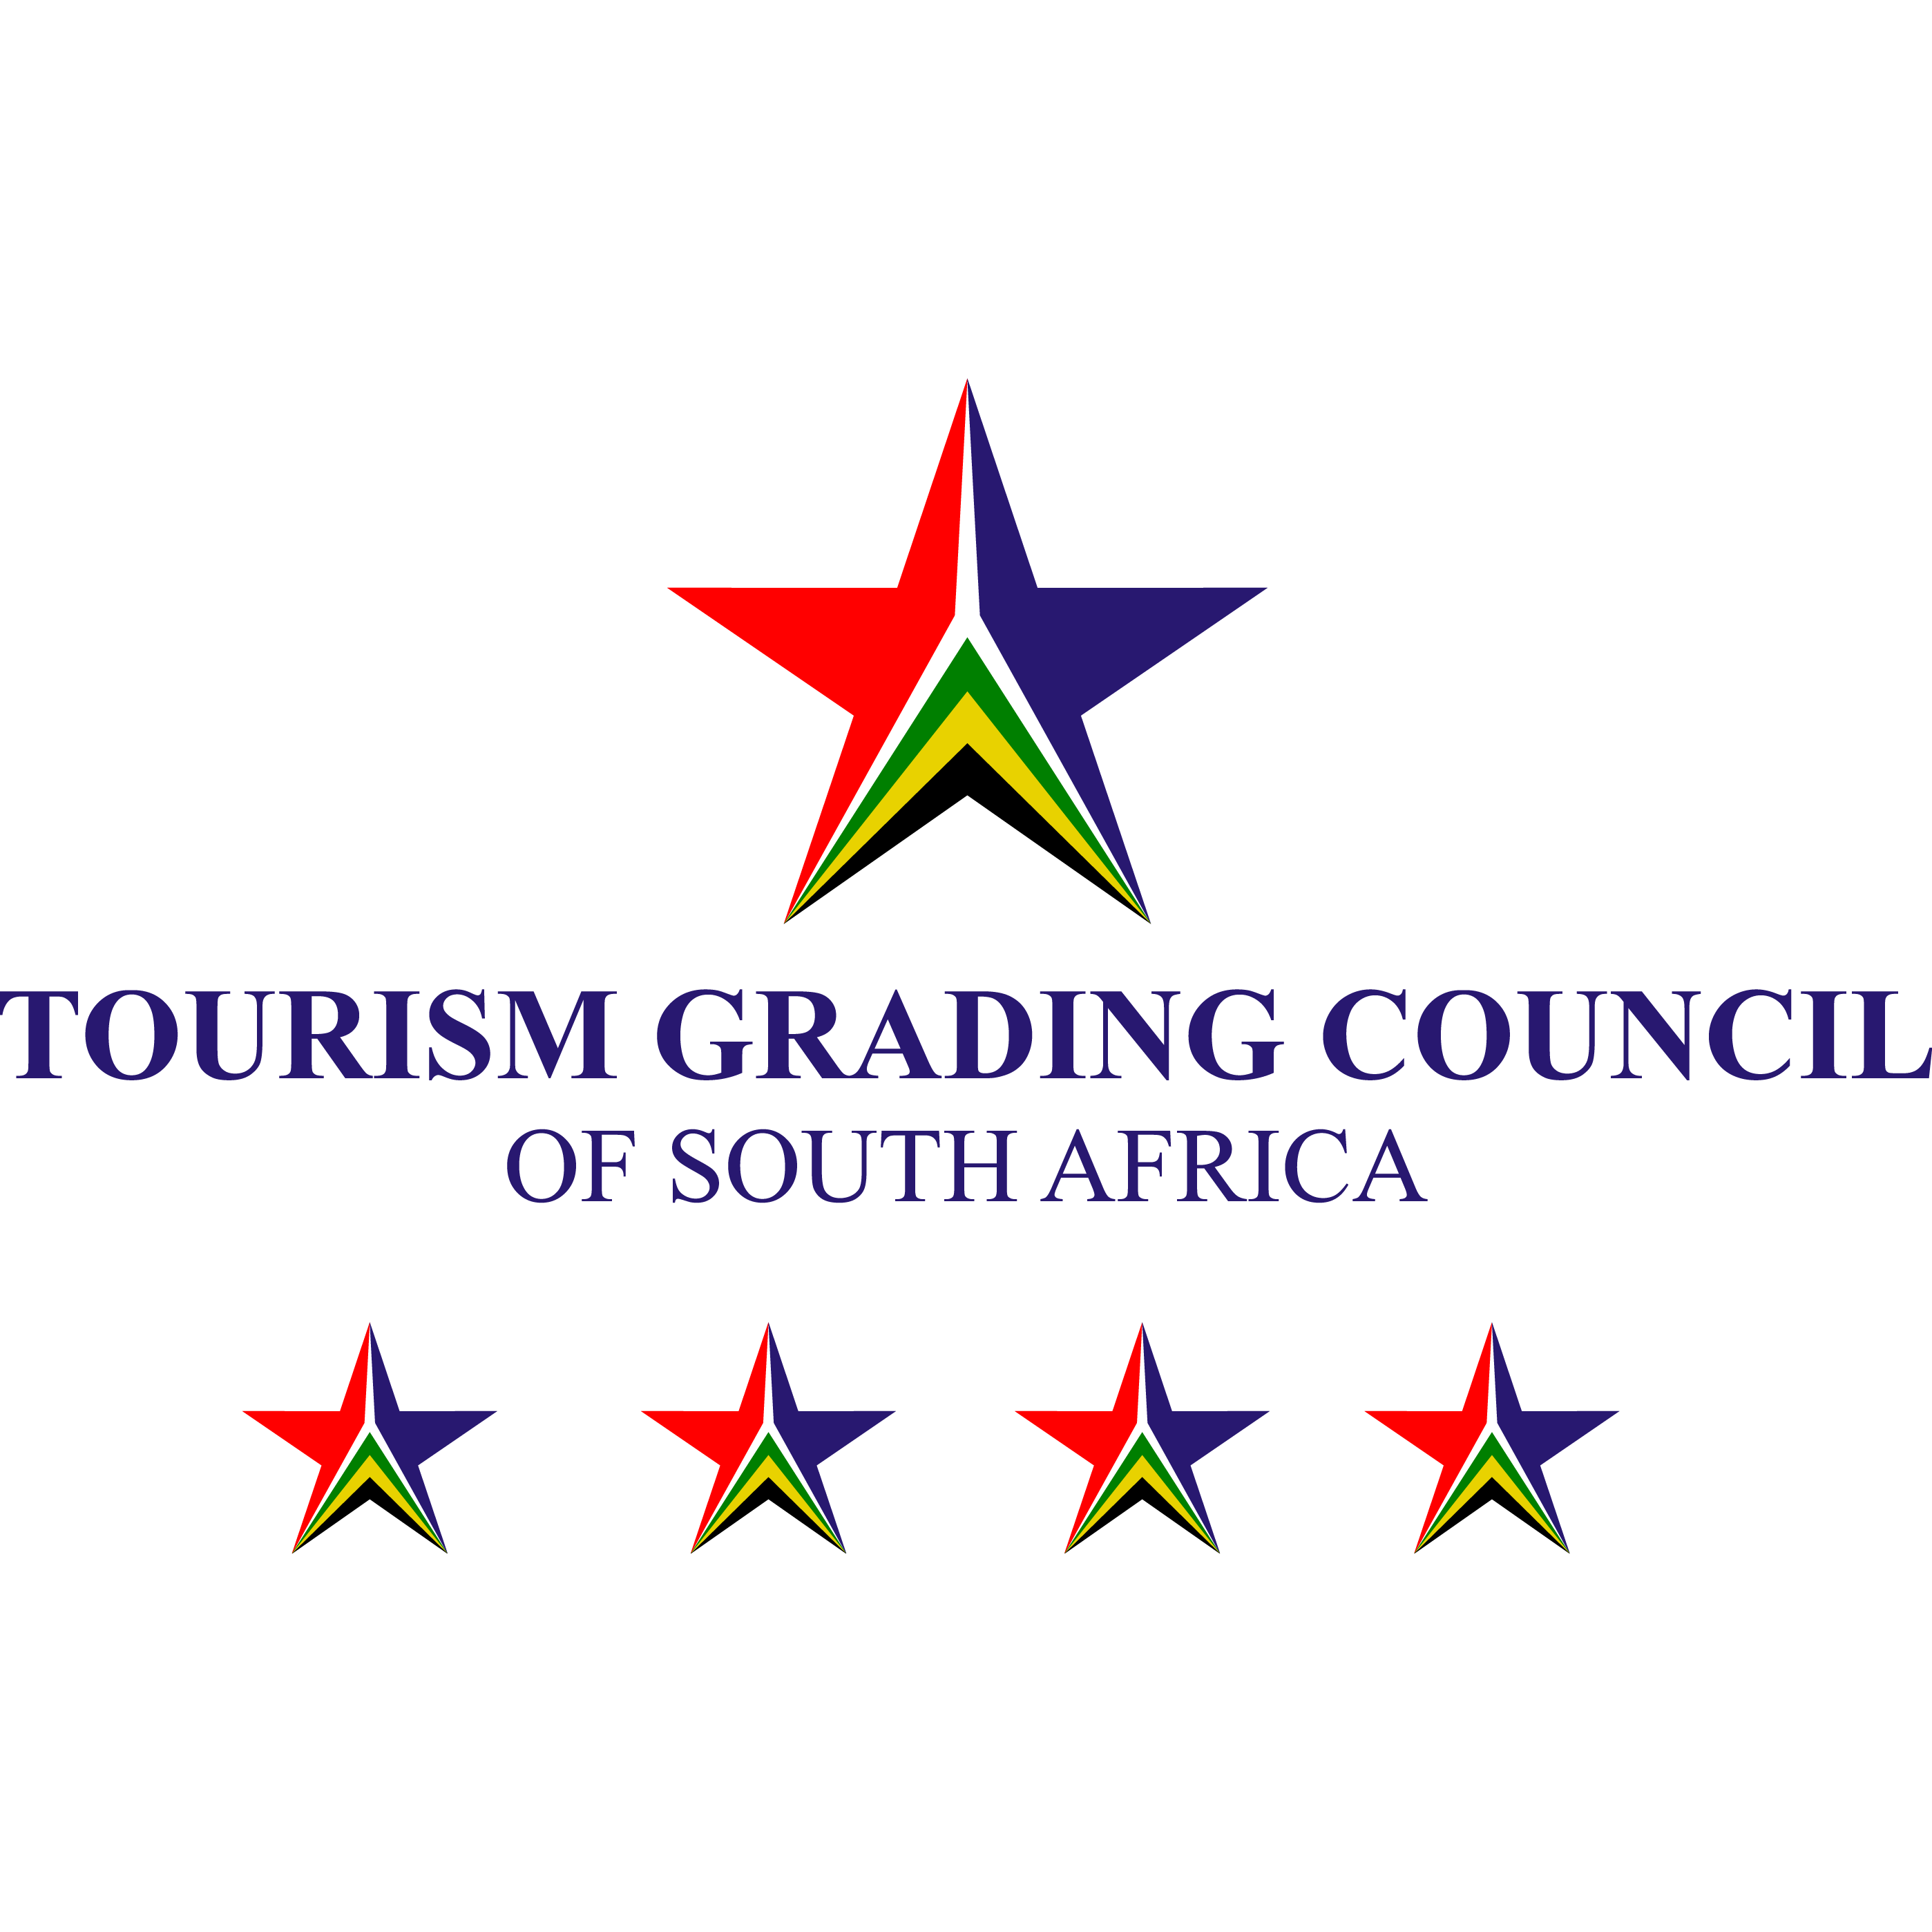 Tourism Grading Council of South Afirca – 4 Stars